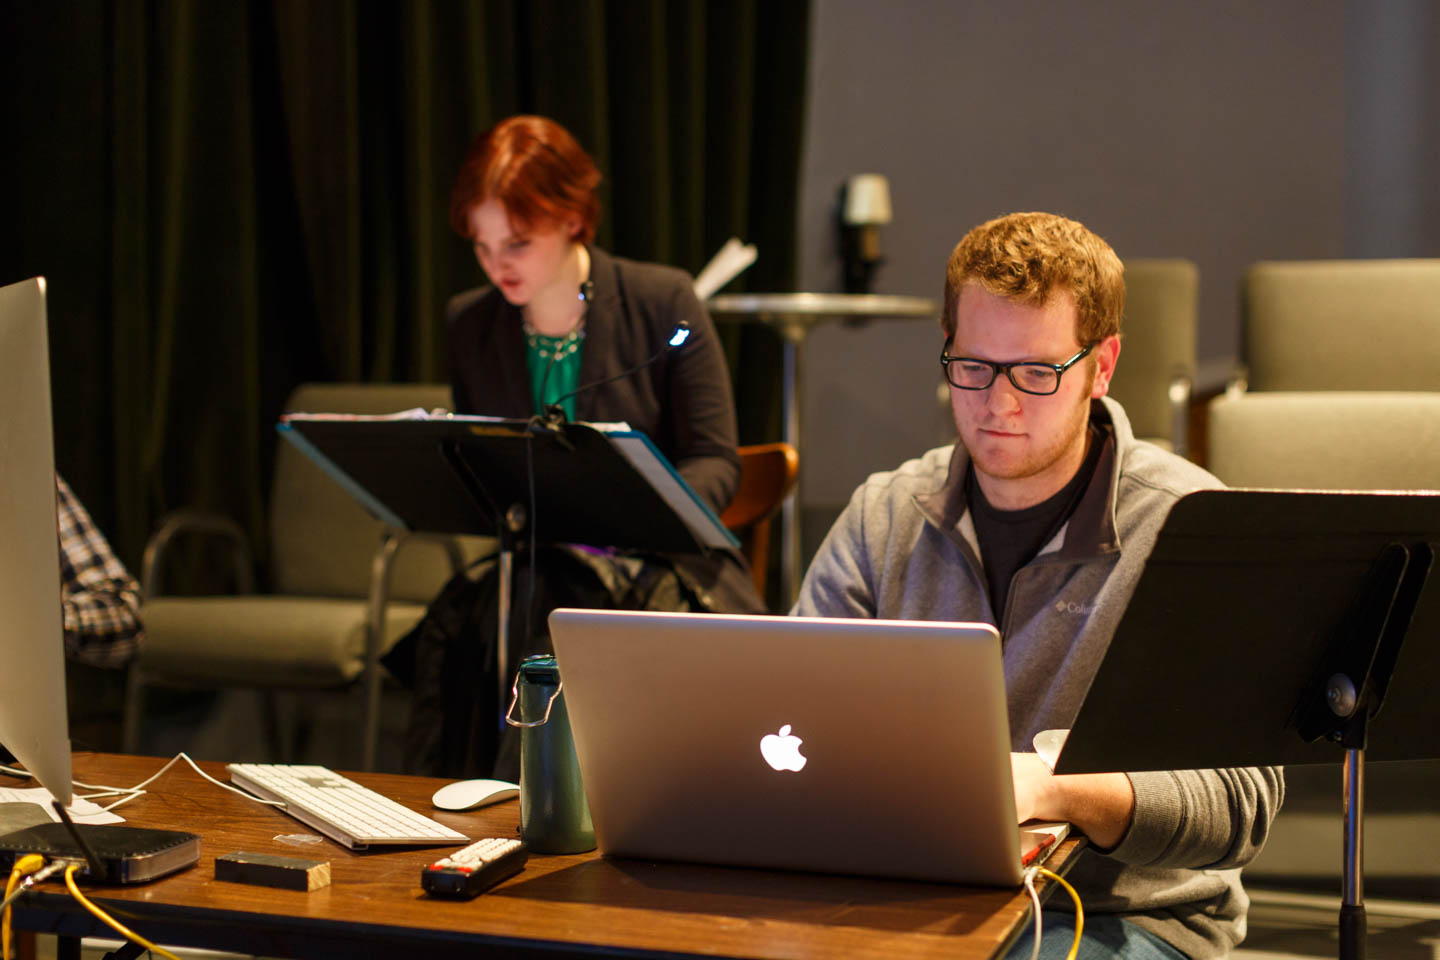 The digital team running sound, animation, lighting, and more